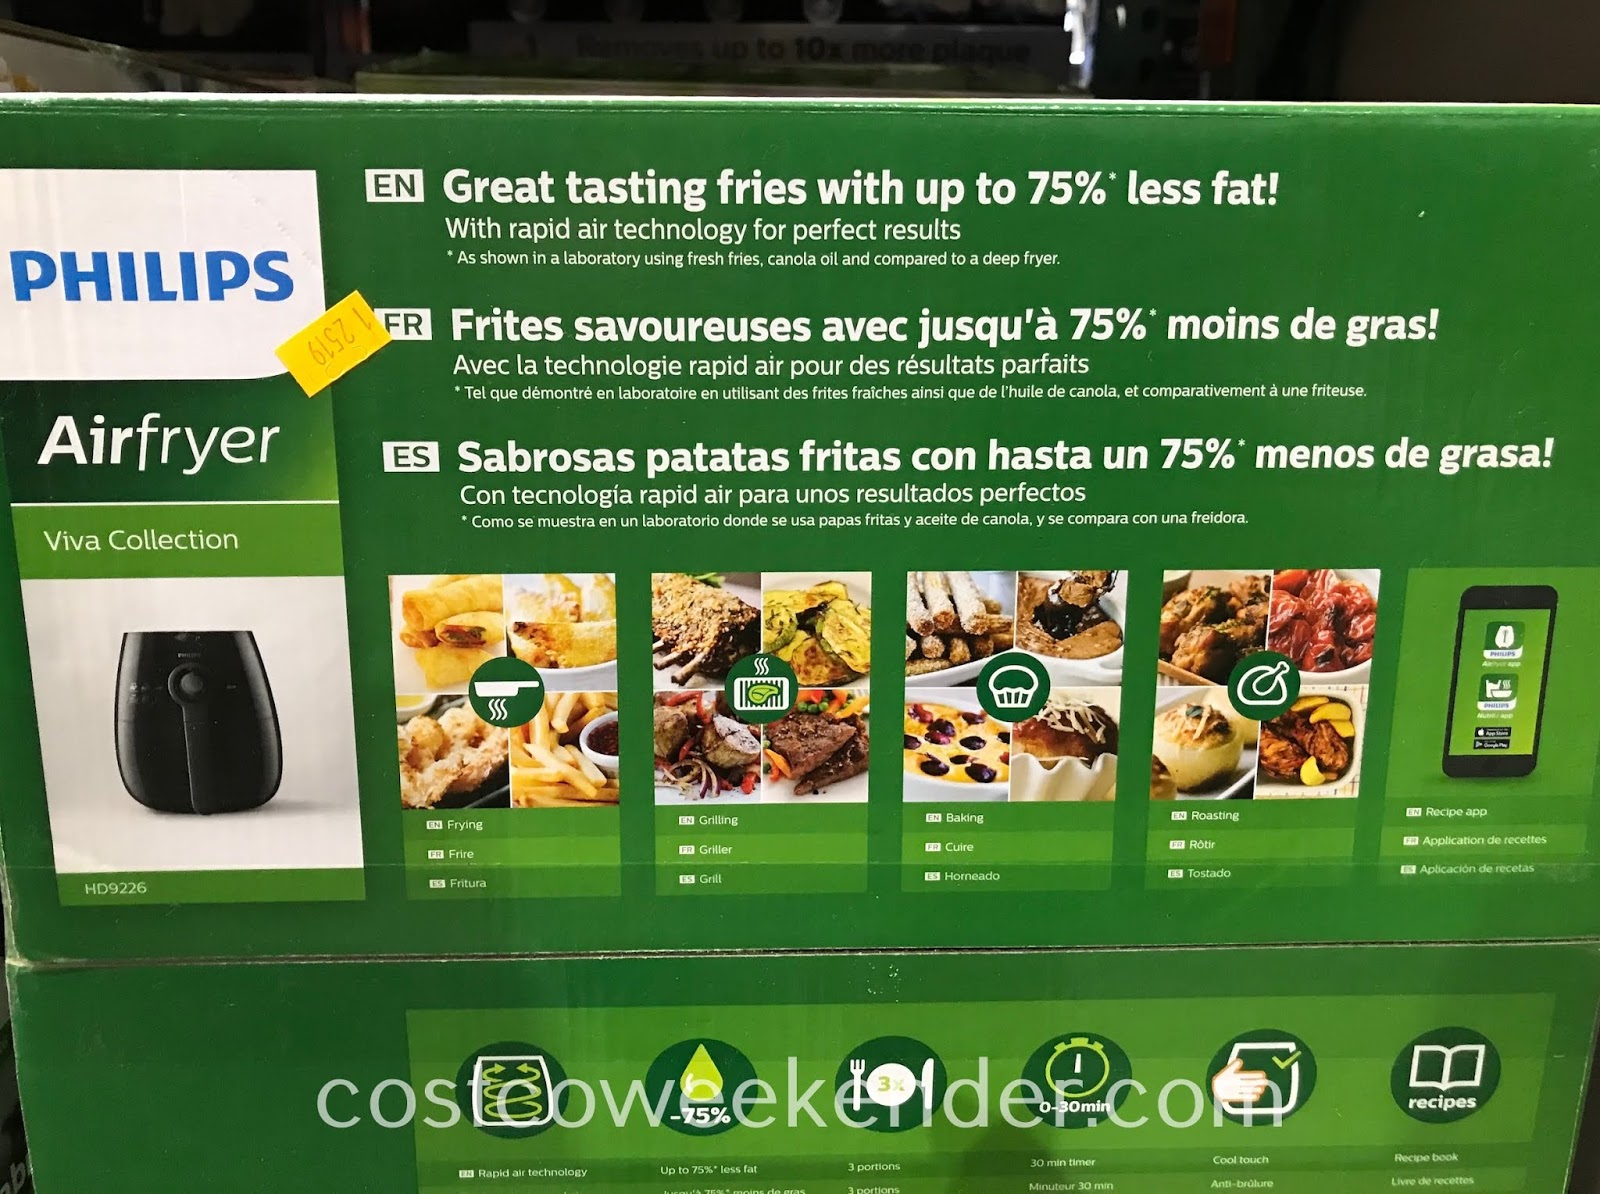 Costco 1242988 - Philips Air Fryer (HD9226): great tasting fries with up to 75% less fat